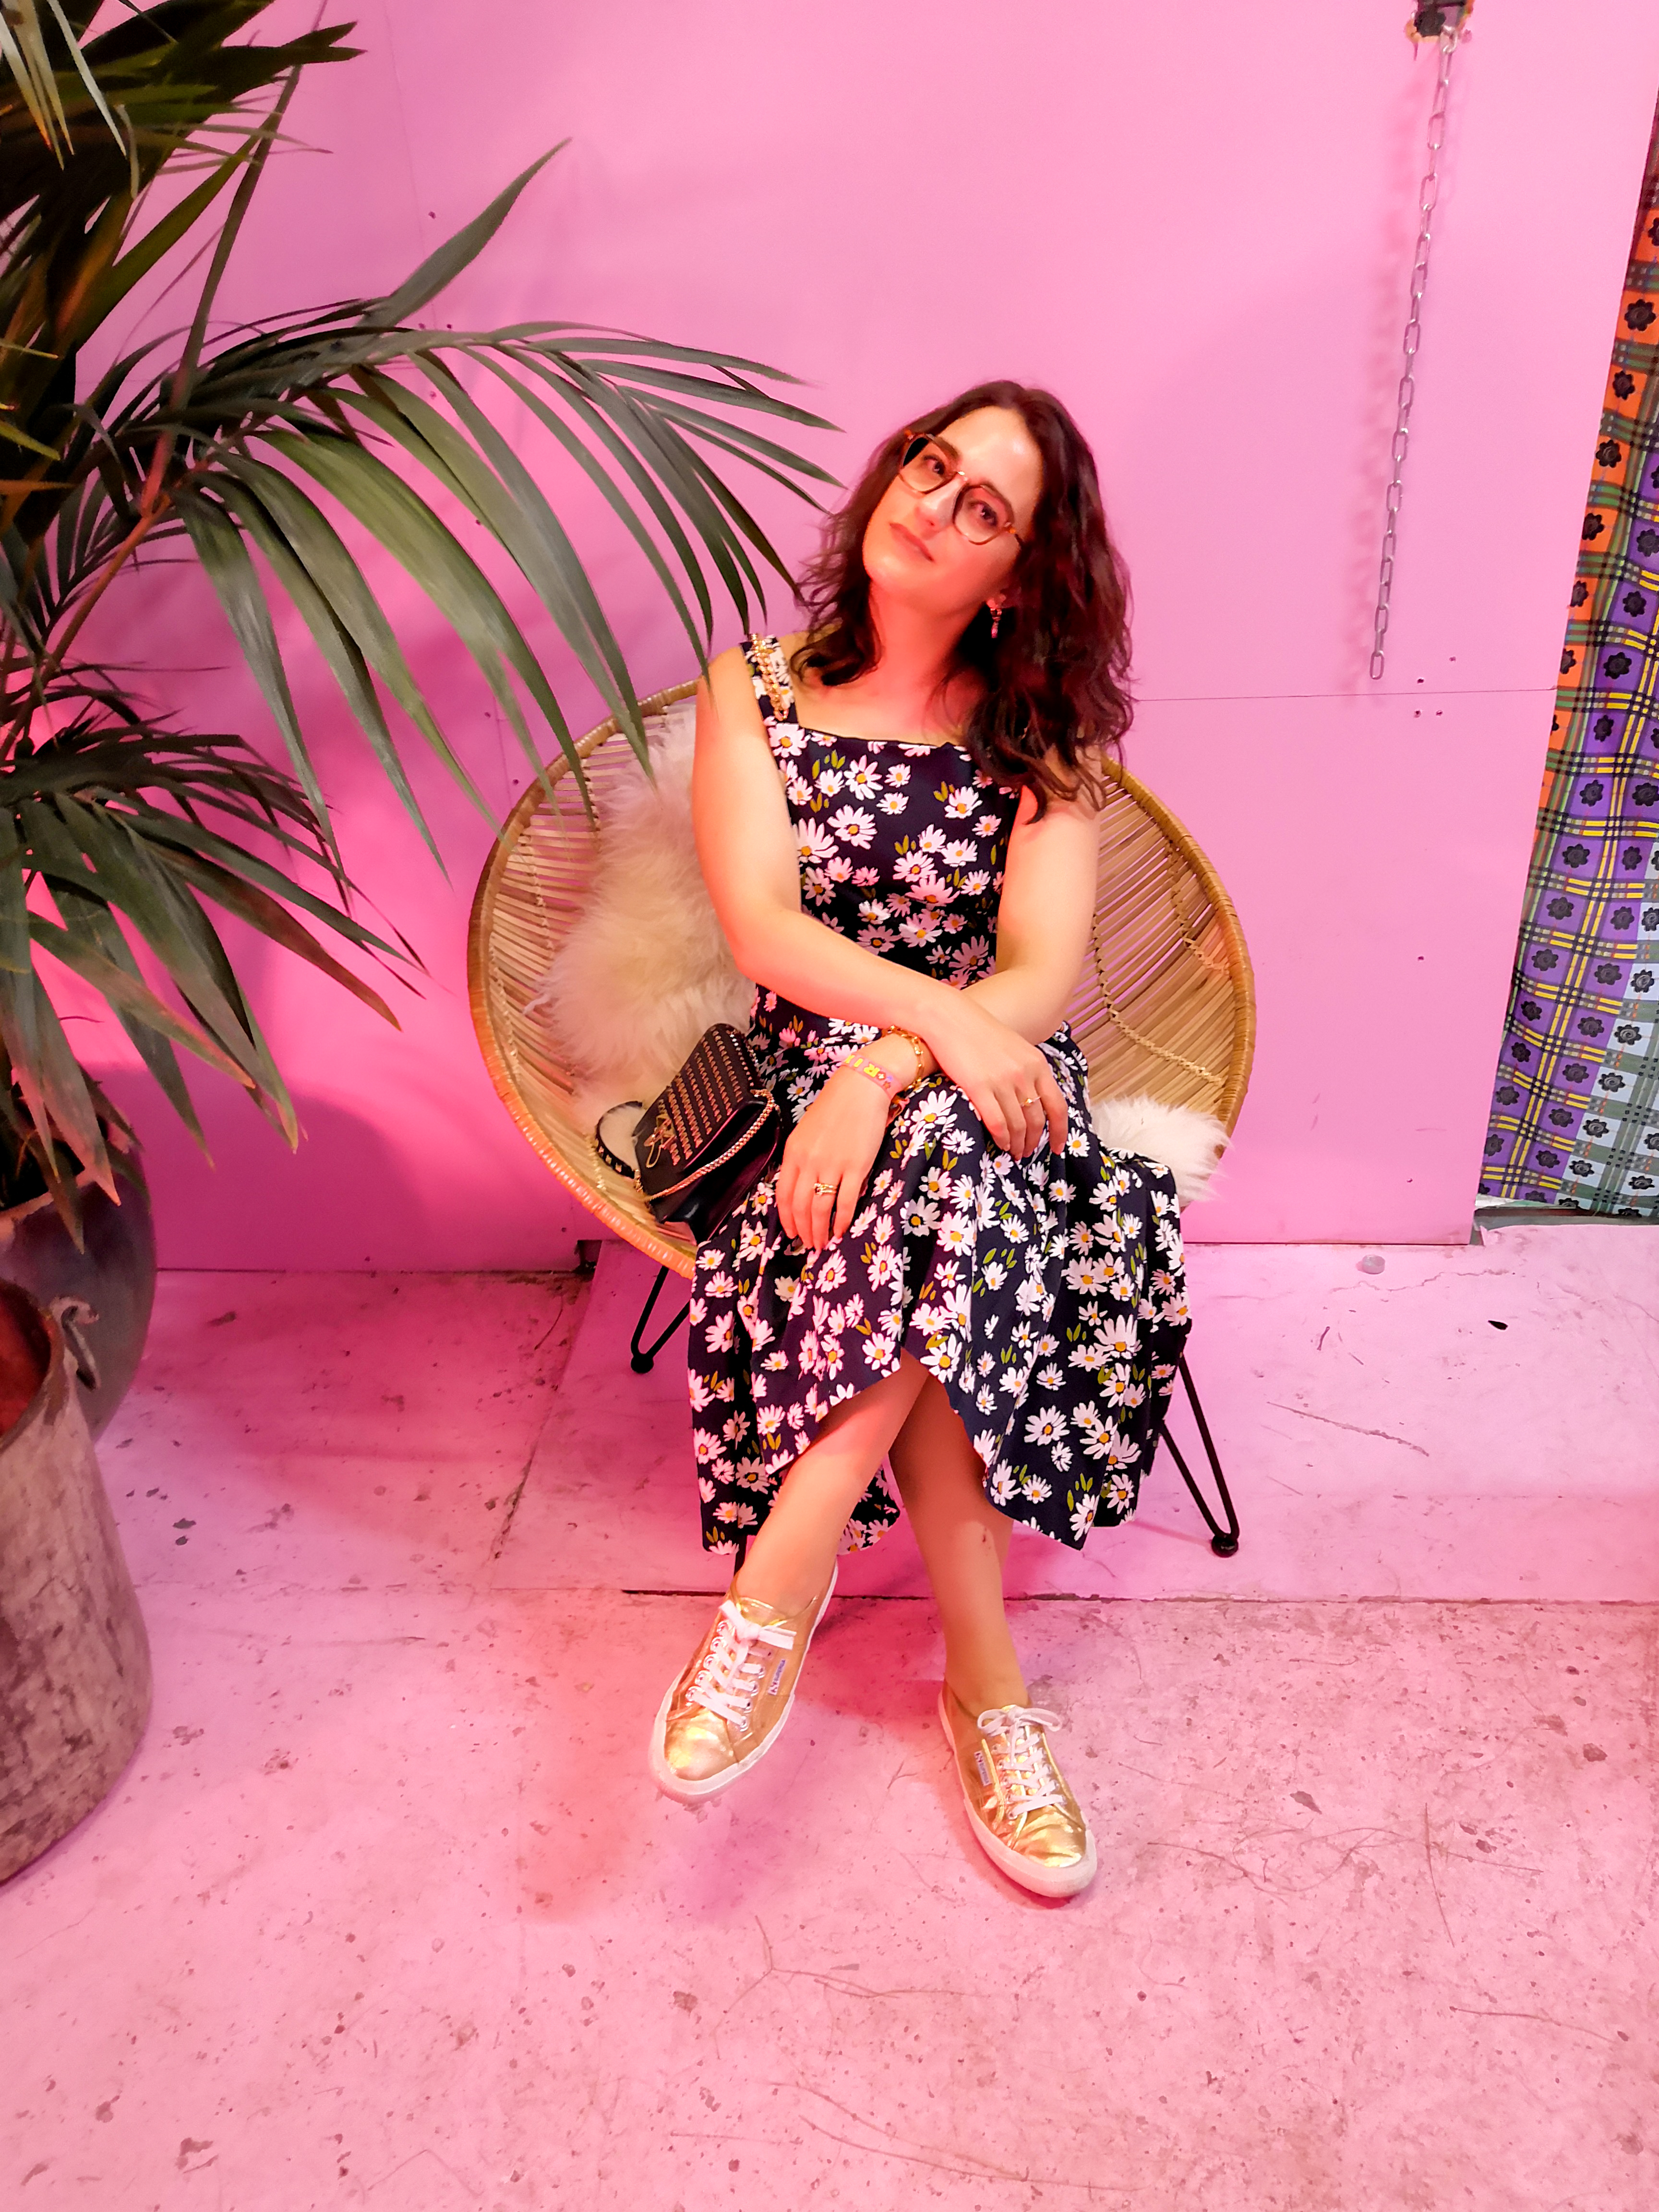 Katie wears a black and white floral maxi dress. She sits on a wicker chair next to a large potted plant in a room with pink walls.